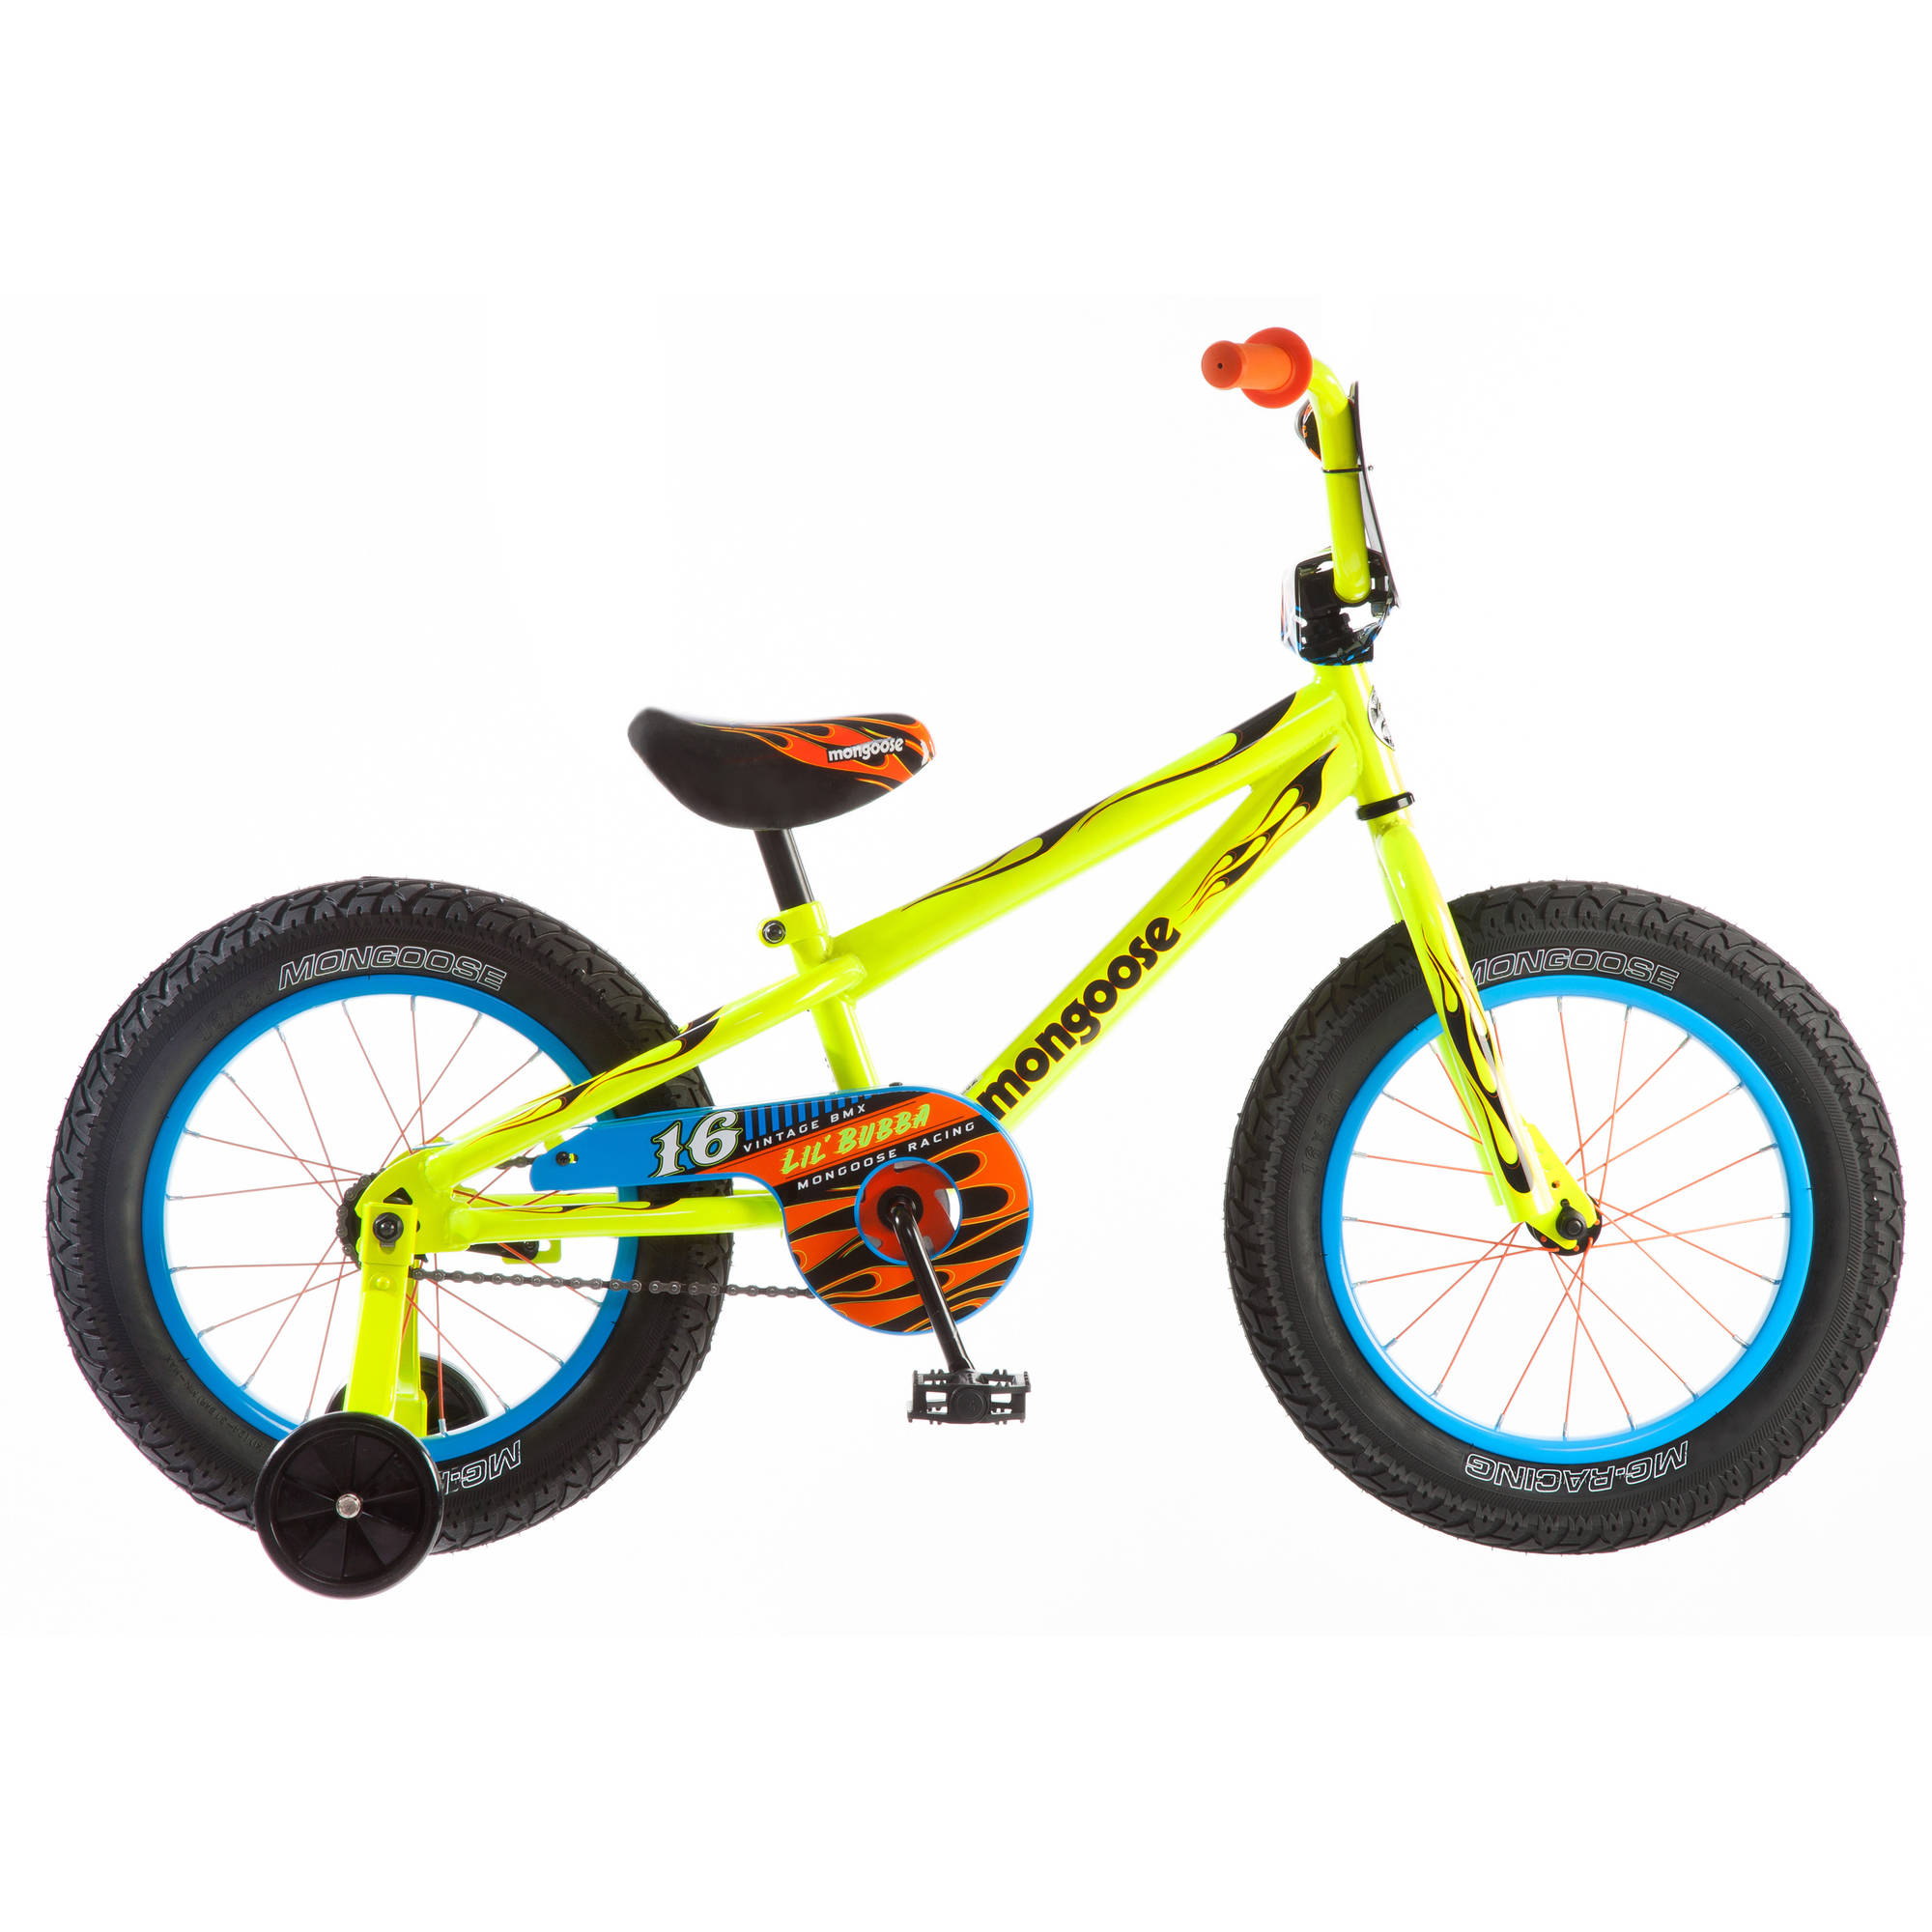 Image result for child bicycle no training wheels yellow